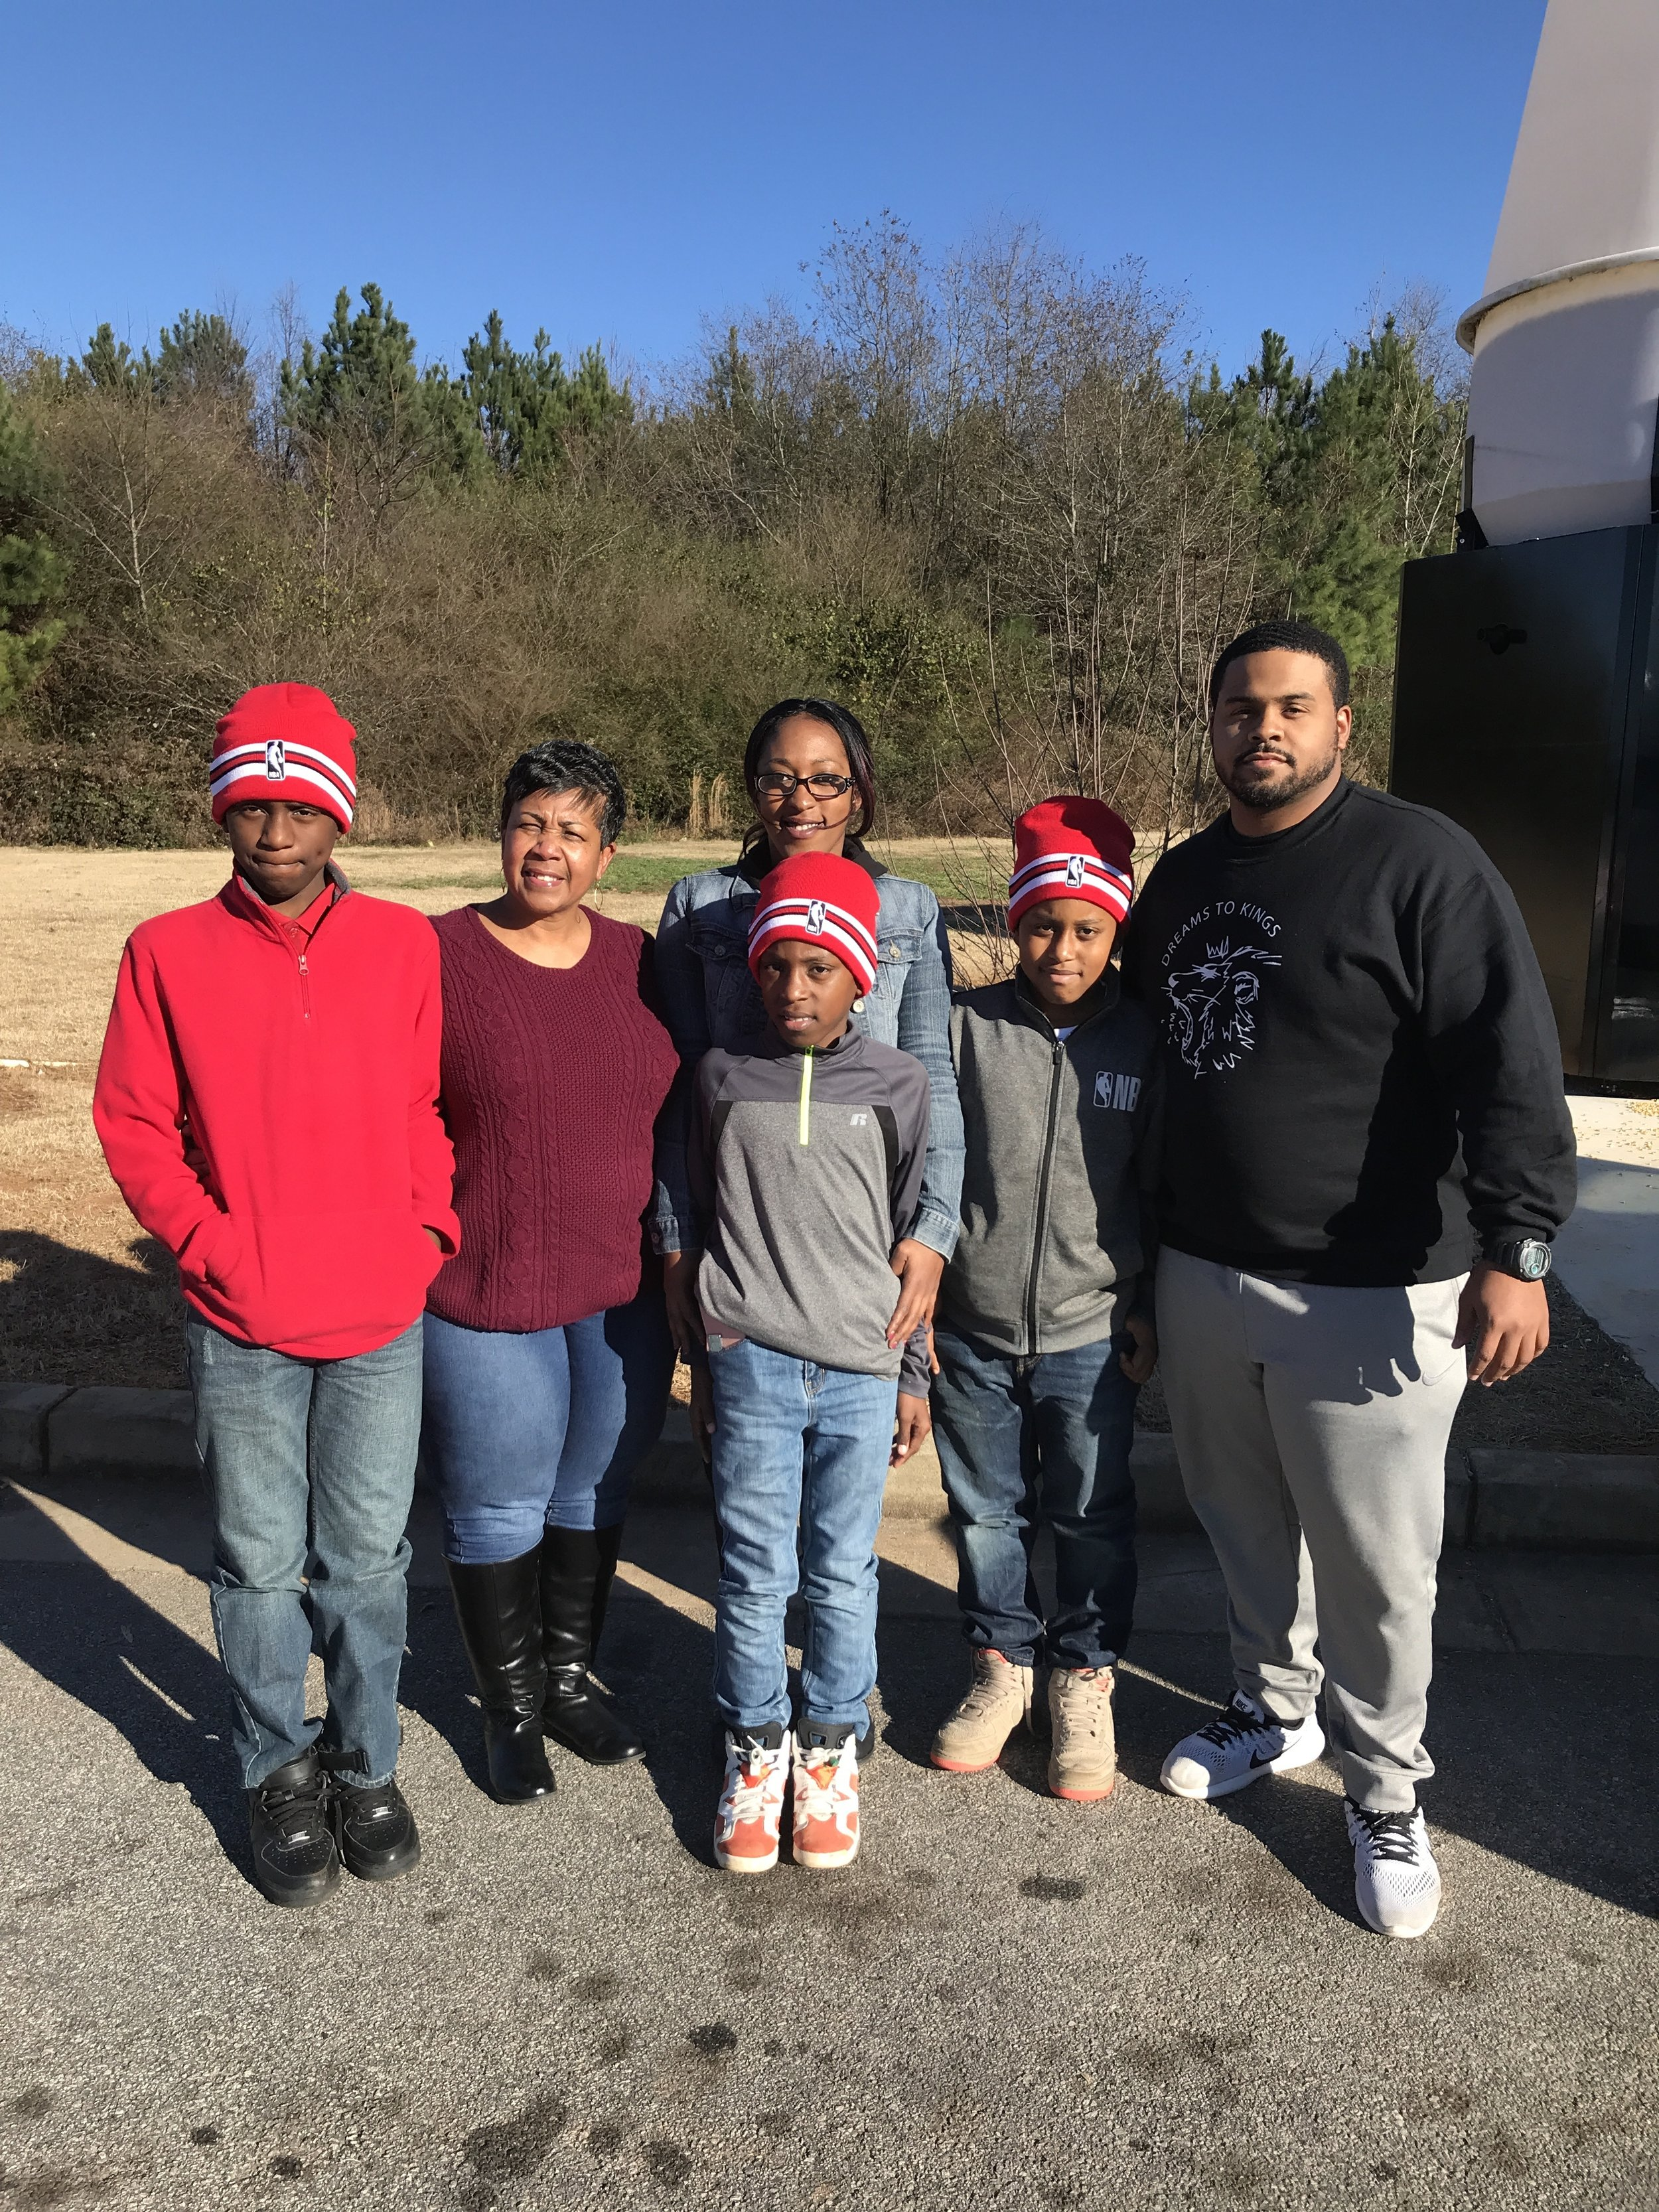 CEO & Founder, Tracy Stephens with the family we were able to help out this holiday season. We want to thank everyone that donated towards our Holiday Blessings initiative.